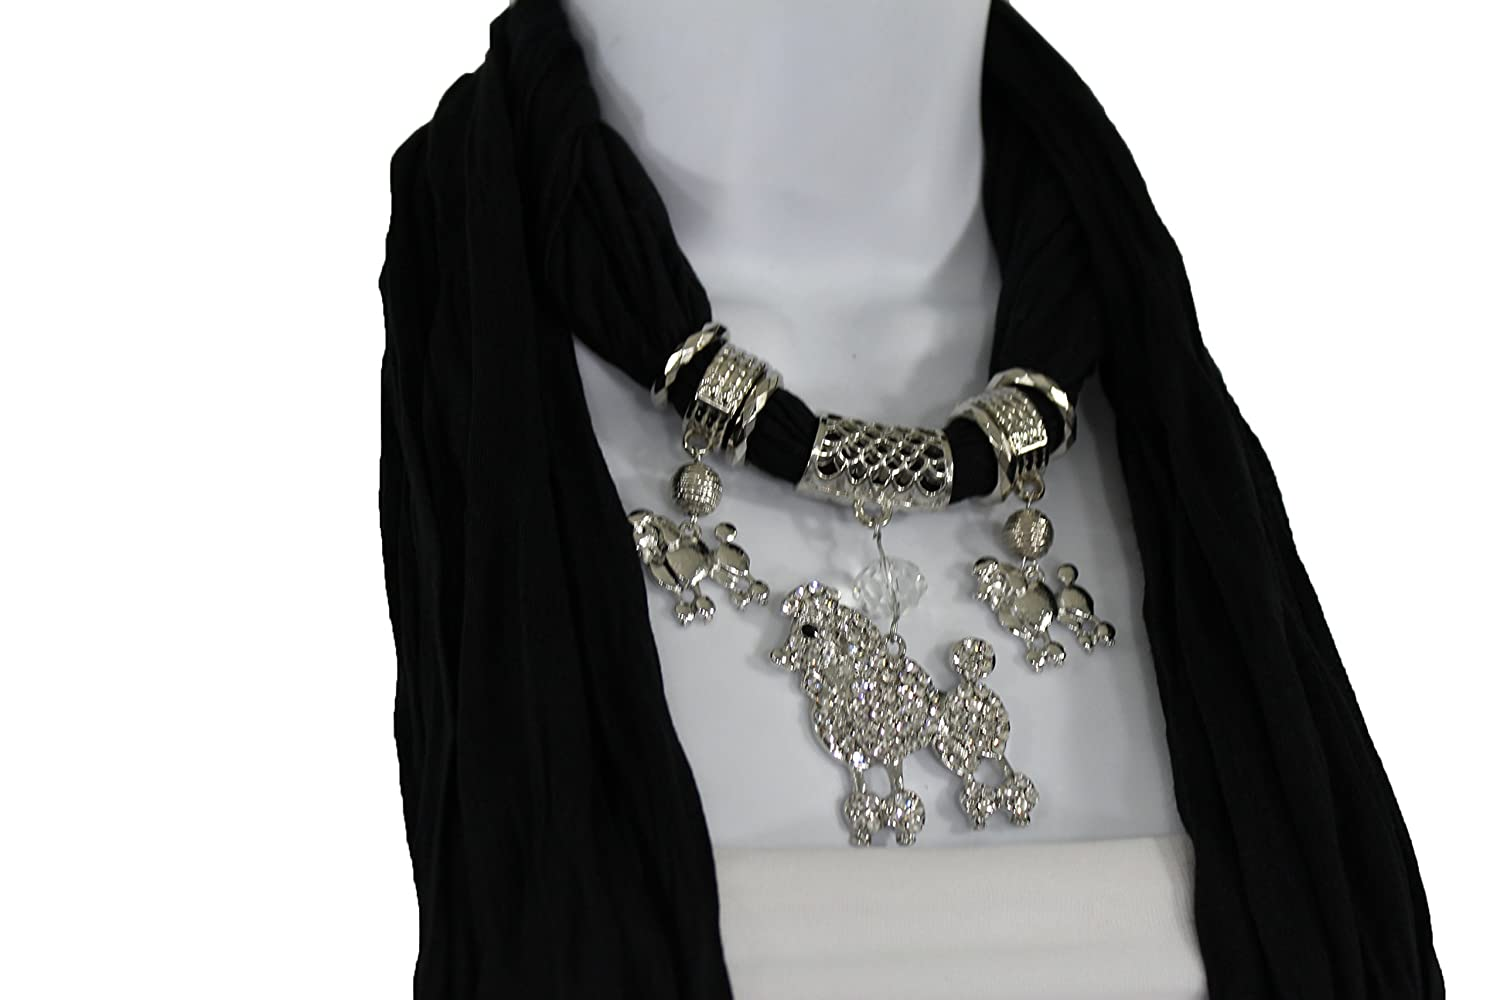 TFJ Women Fashion Scarf Necklace Soft Fabric Big Silver Metal Poodle Dog Charm Pendant